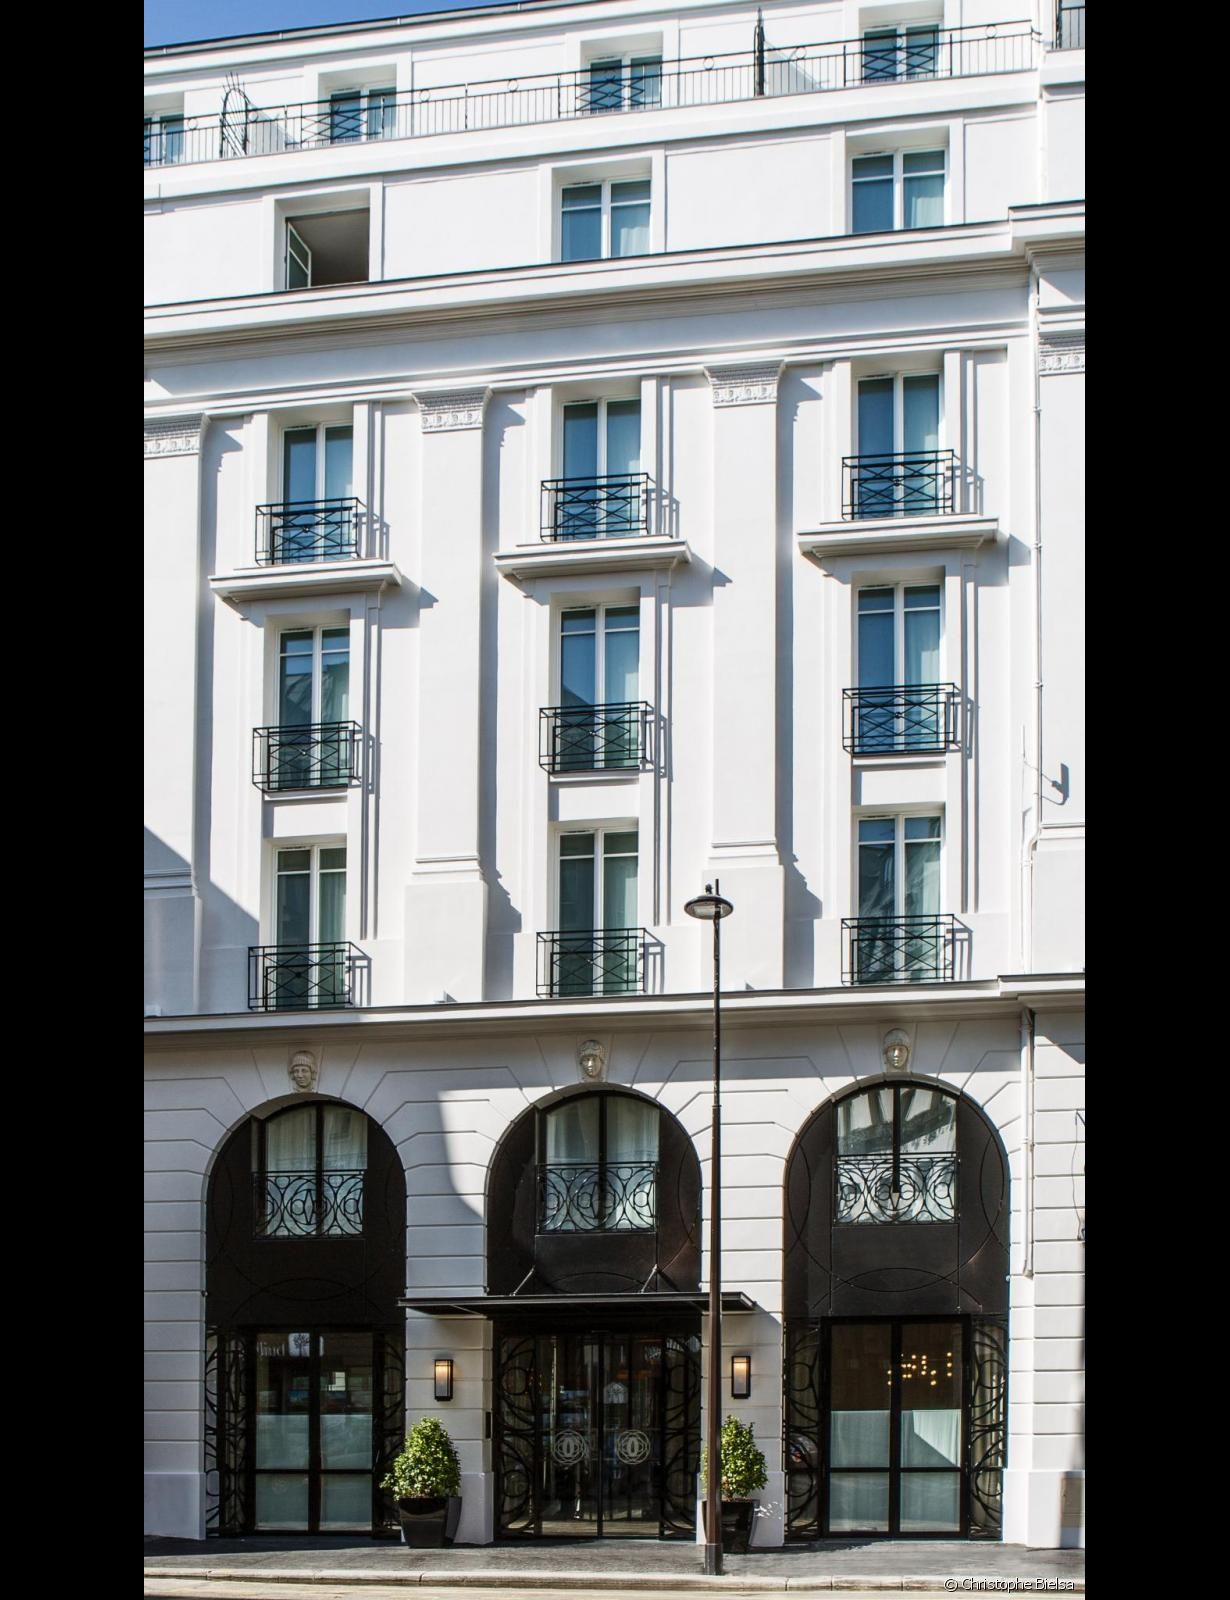 Le Tsuba Hôtel, 45 rue des Acacias, 75017 Paris - Photo 2